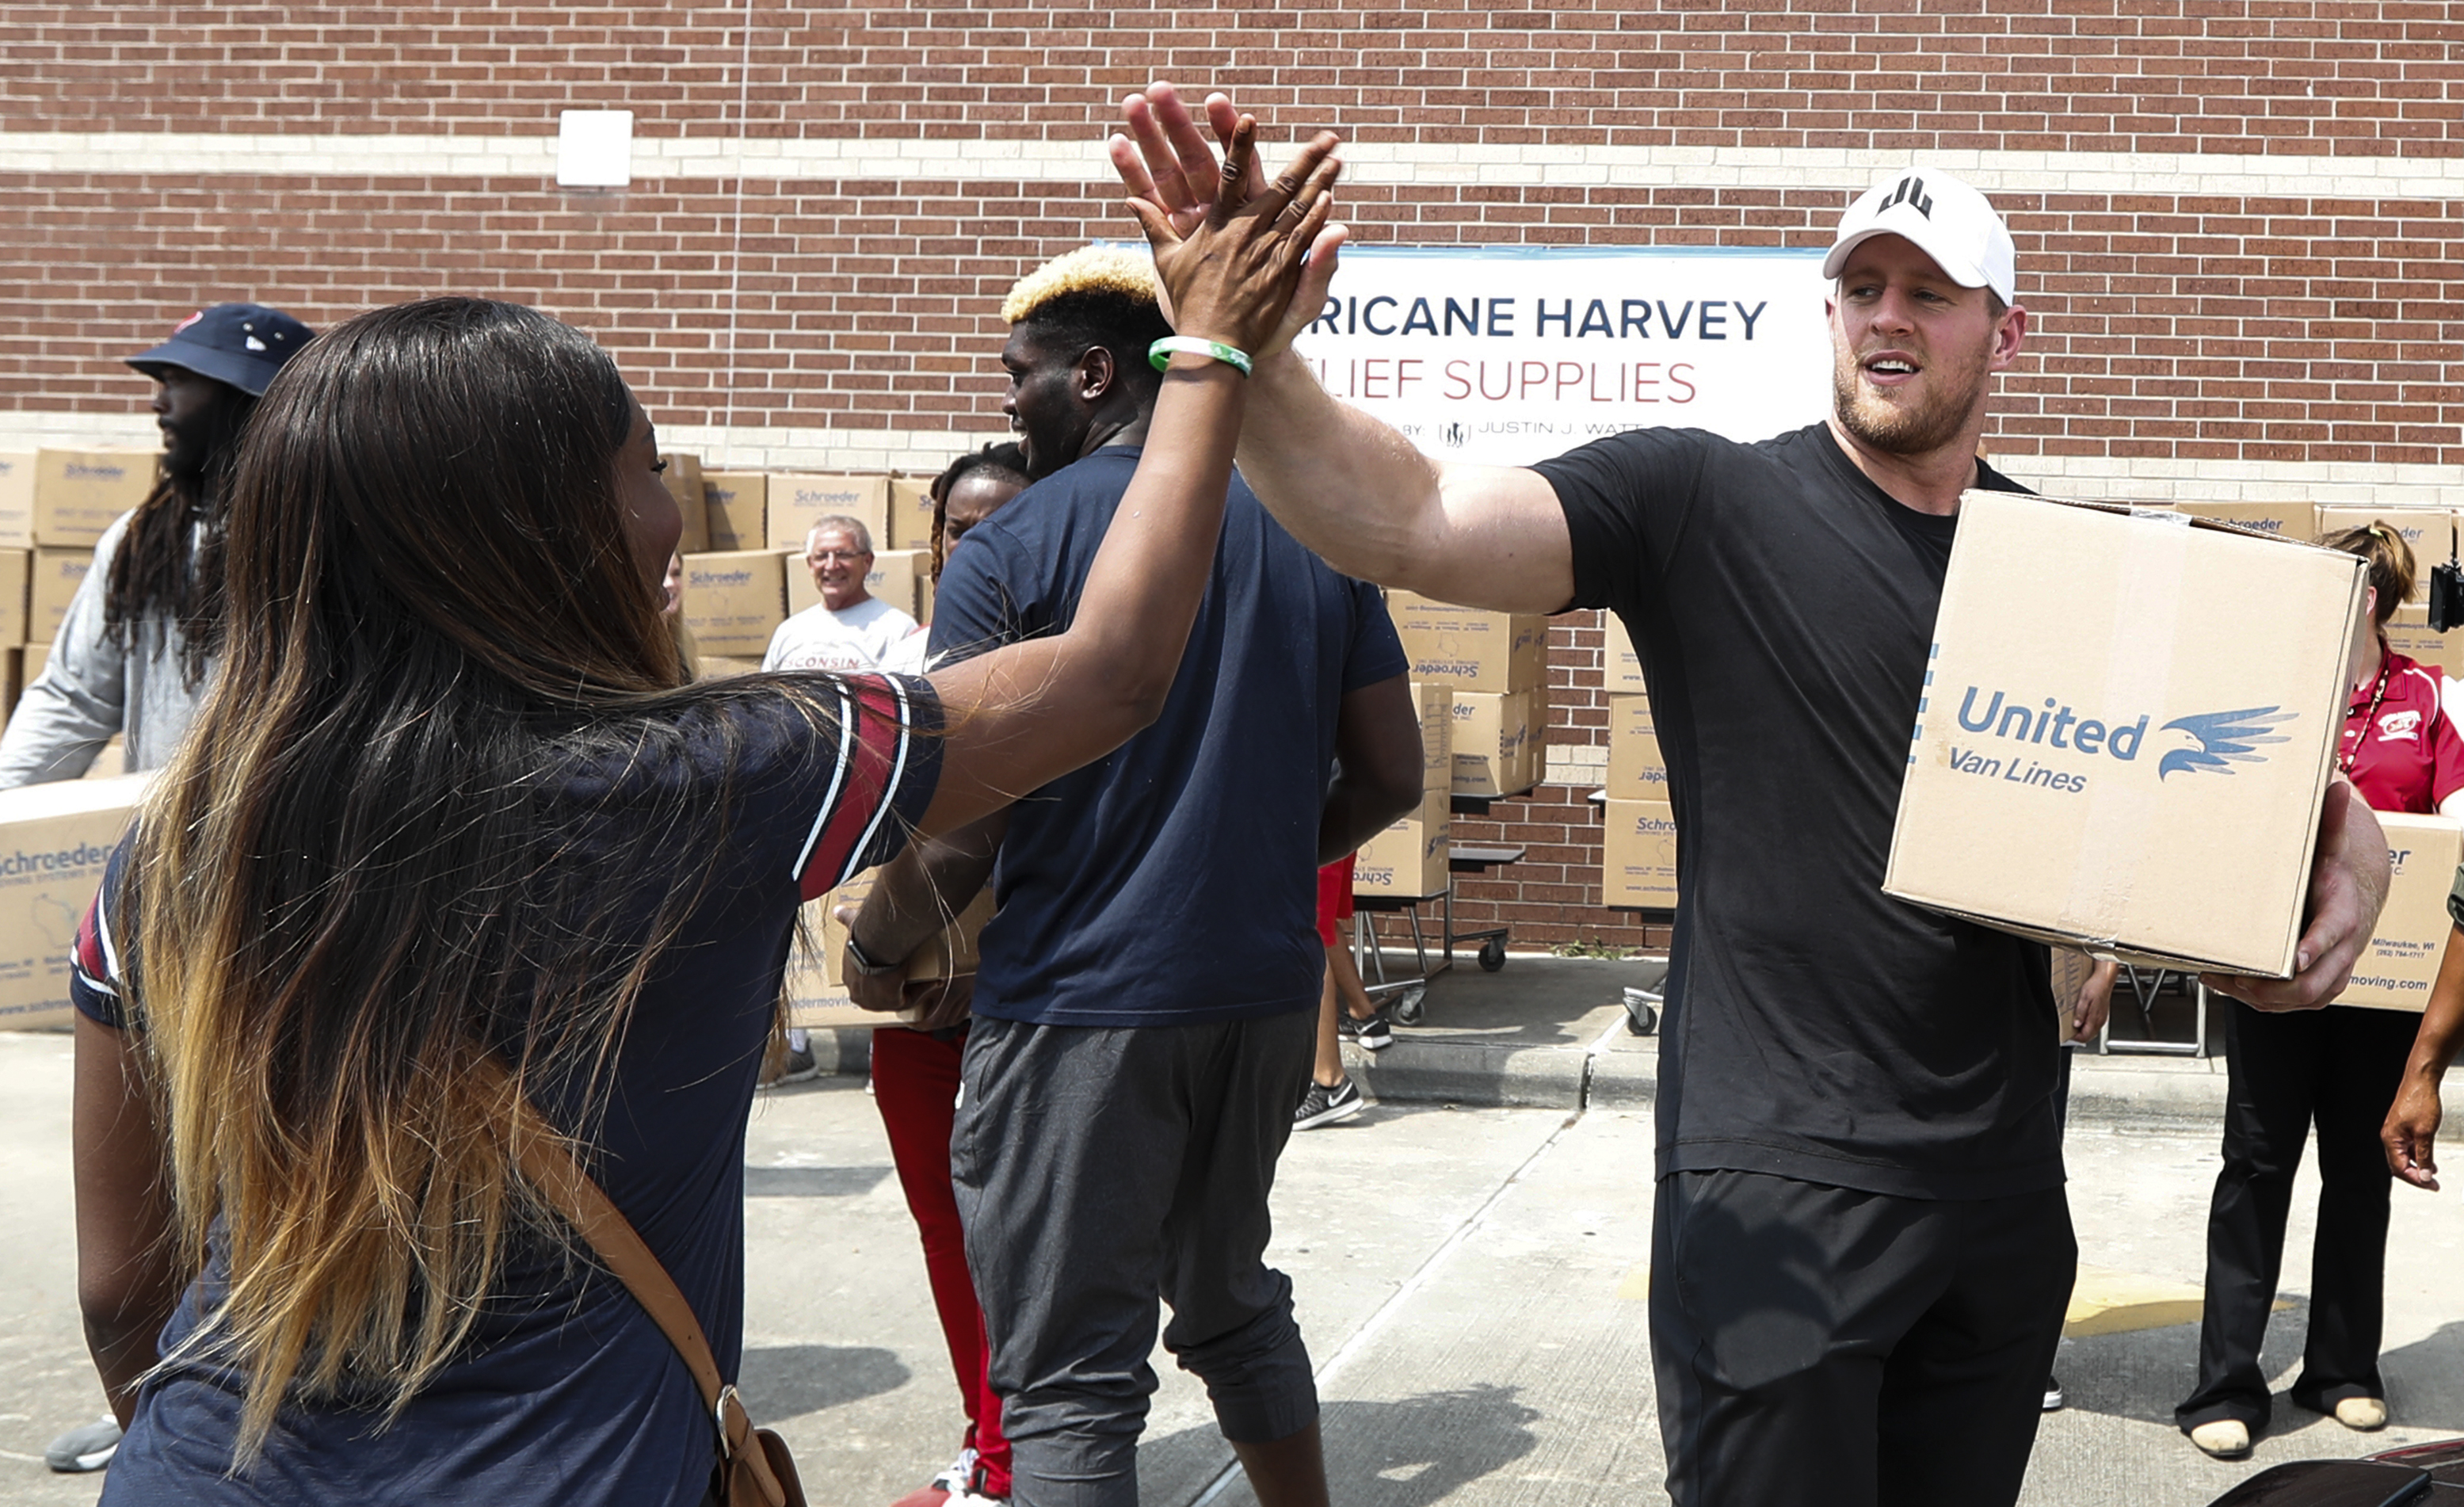 JJ Watt helping Hurricane victims